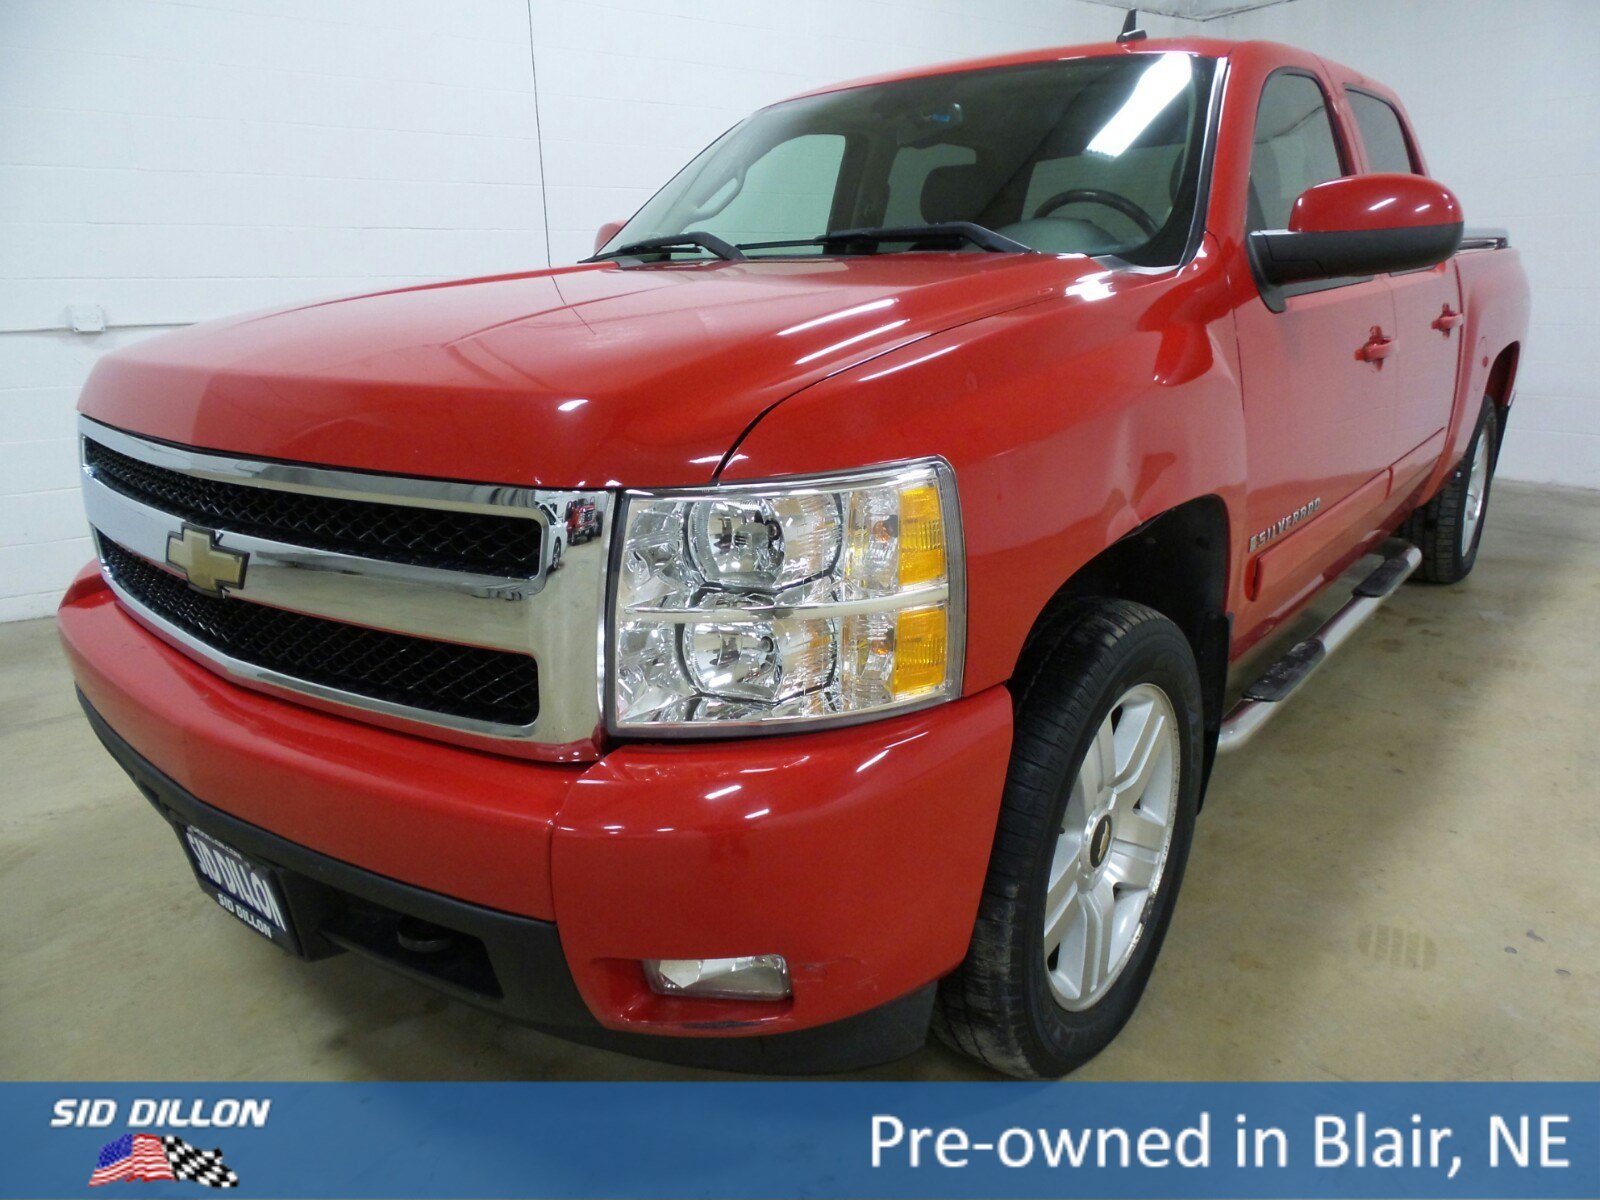 used for photo in bethlehem sale new vehicle pa vehiclesearchresults silverado chevrolet vehicles